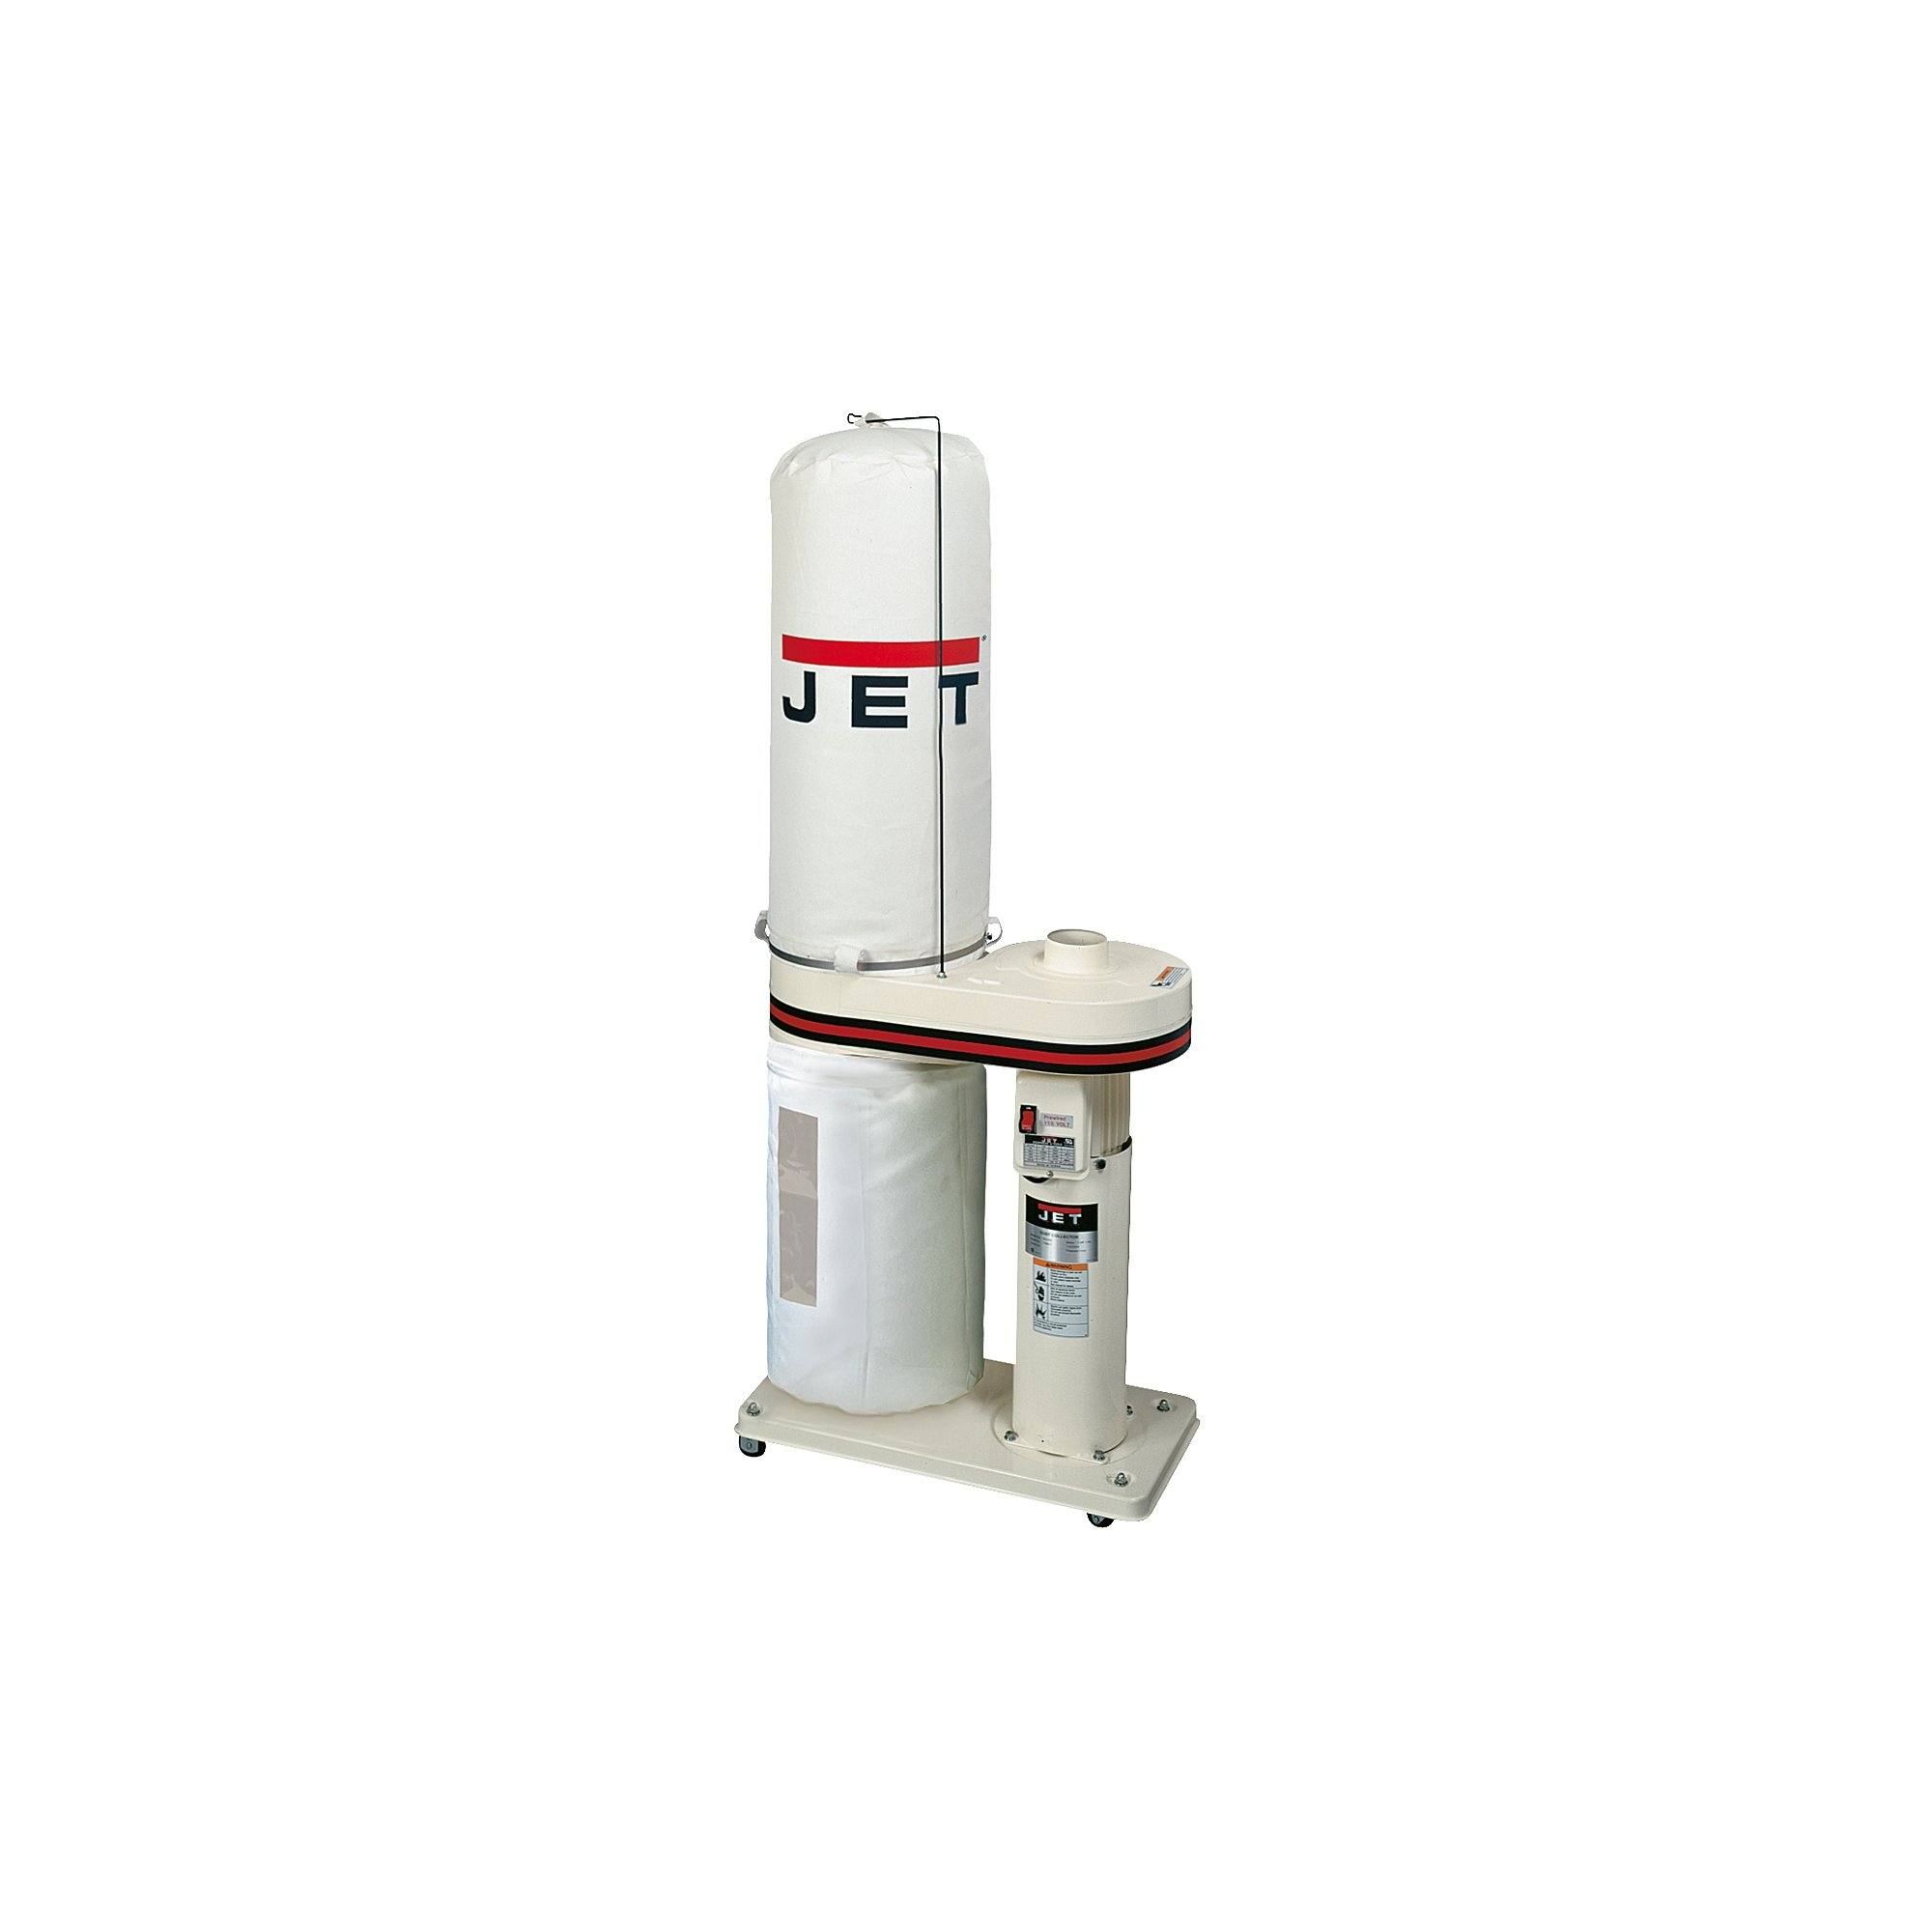 JET DC-650BK Dust Collector with Bag Filter Kit